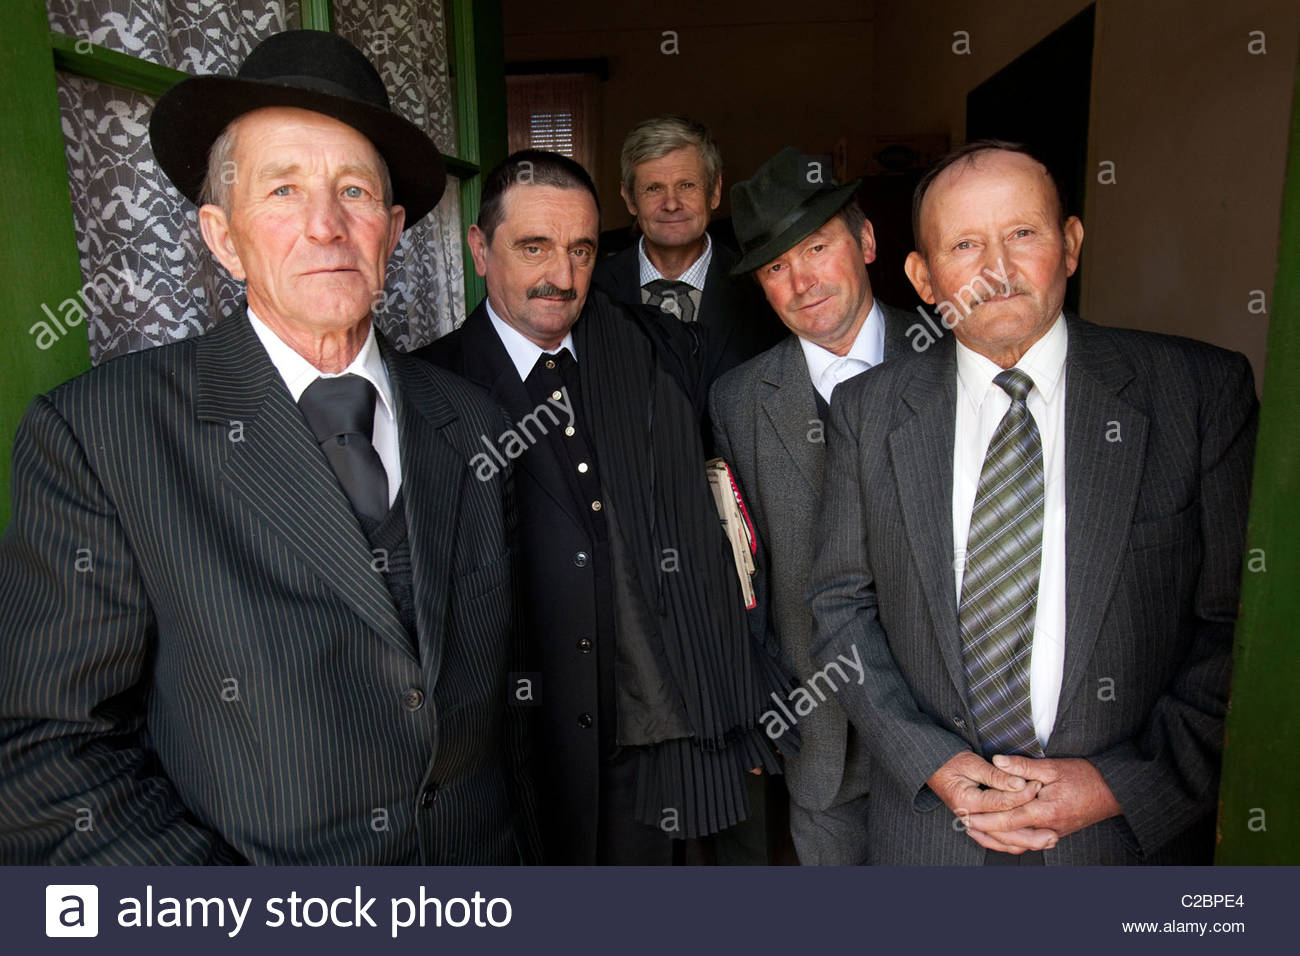 Members of the clergy, after Sunday mass in a small town of 900 people - Stock Image